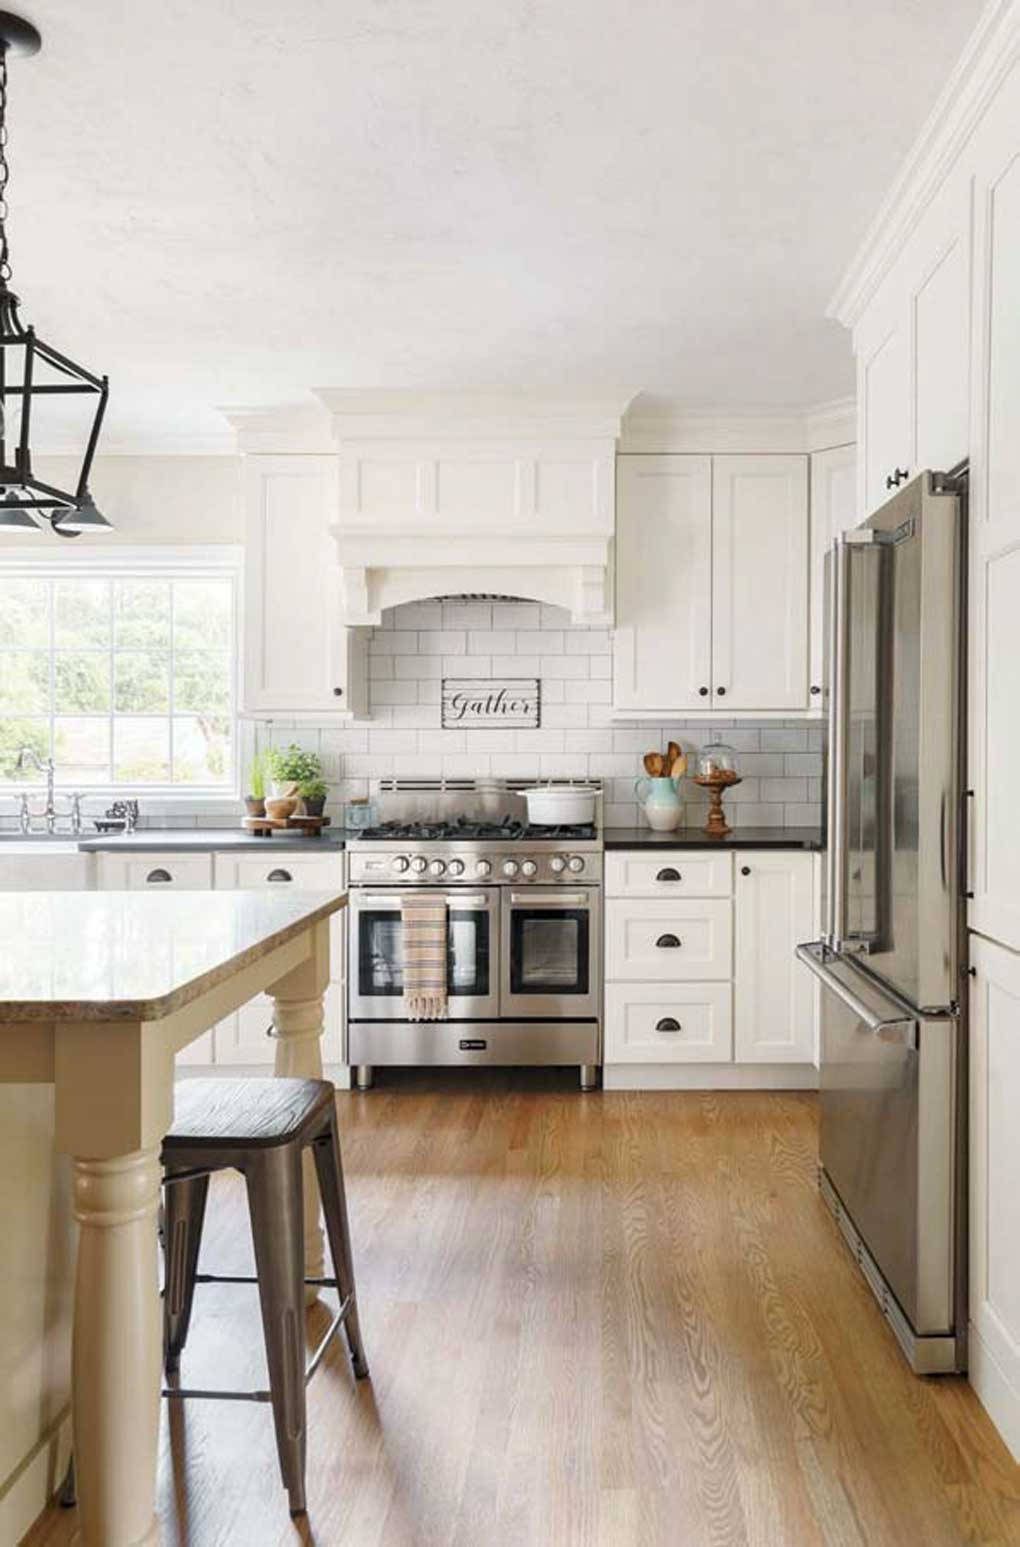 White kitchen with rustic cabinetry, oil-rubbed bronze pendant lights above the island and stainless steel appliances.